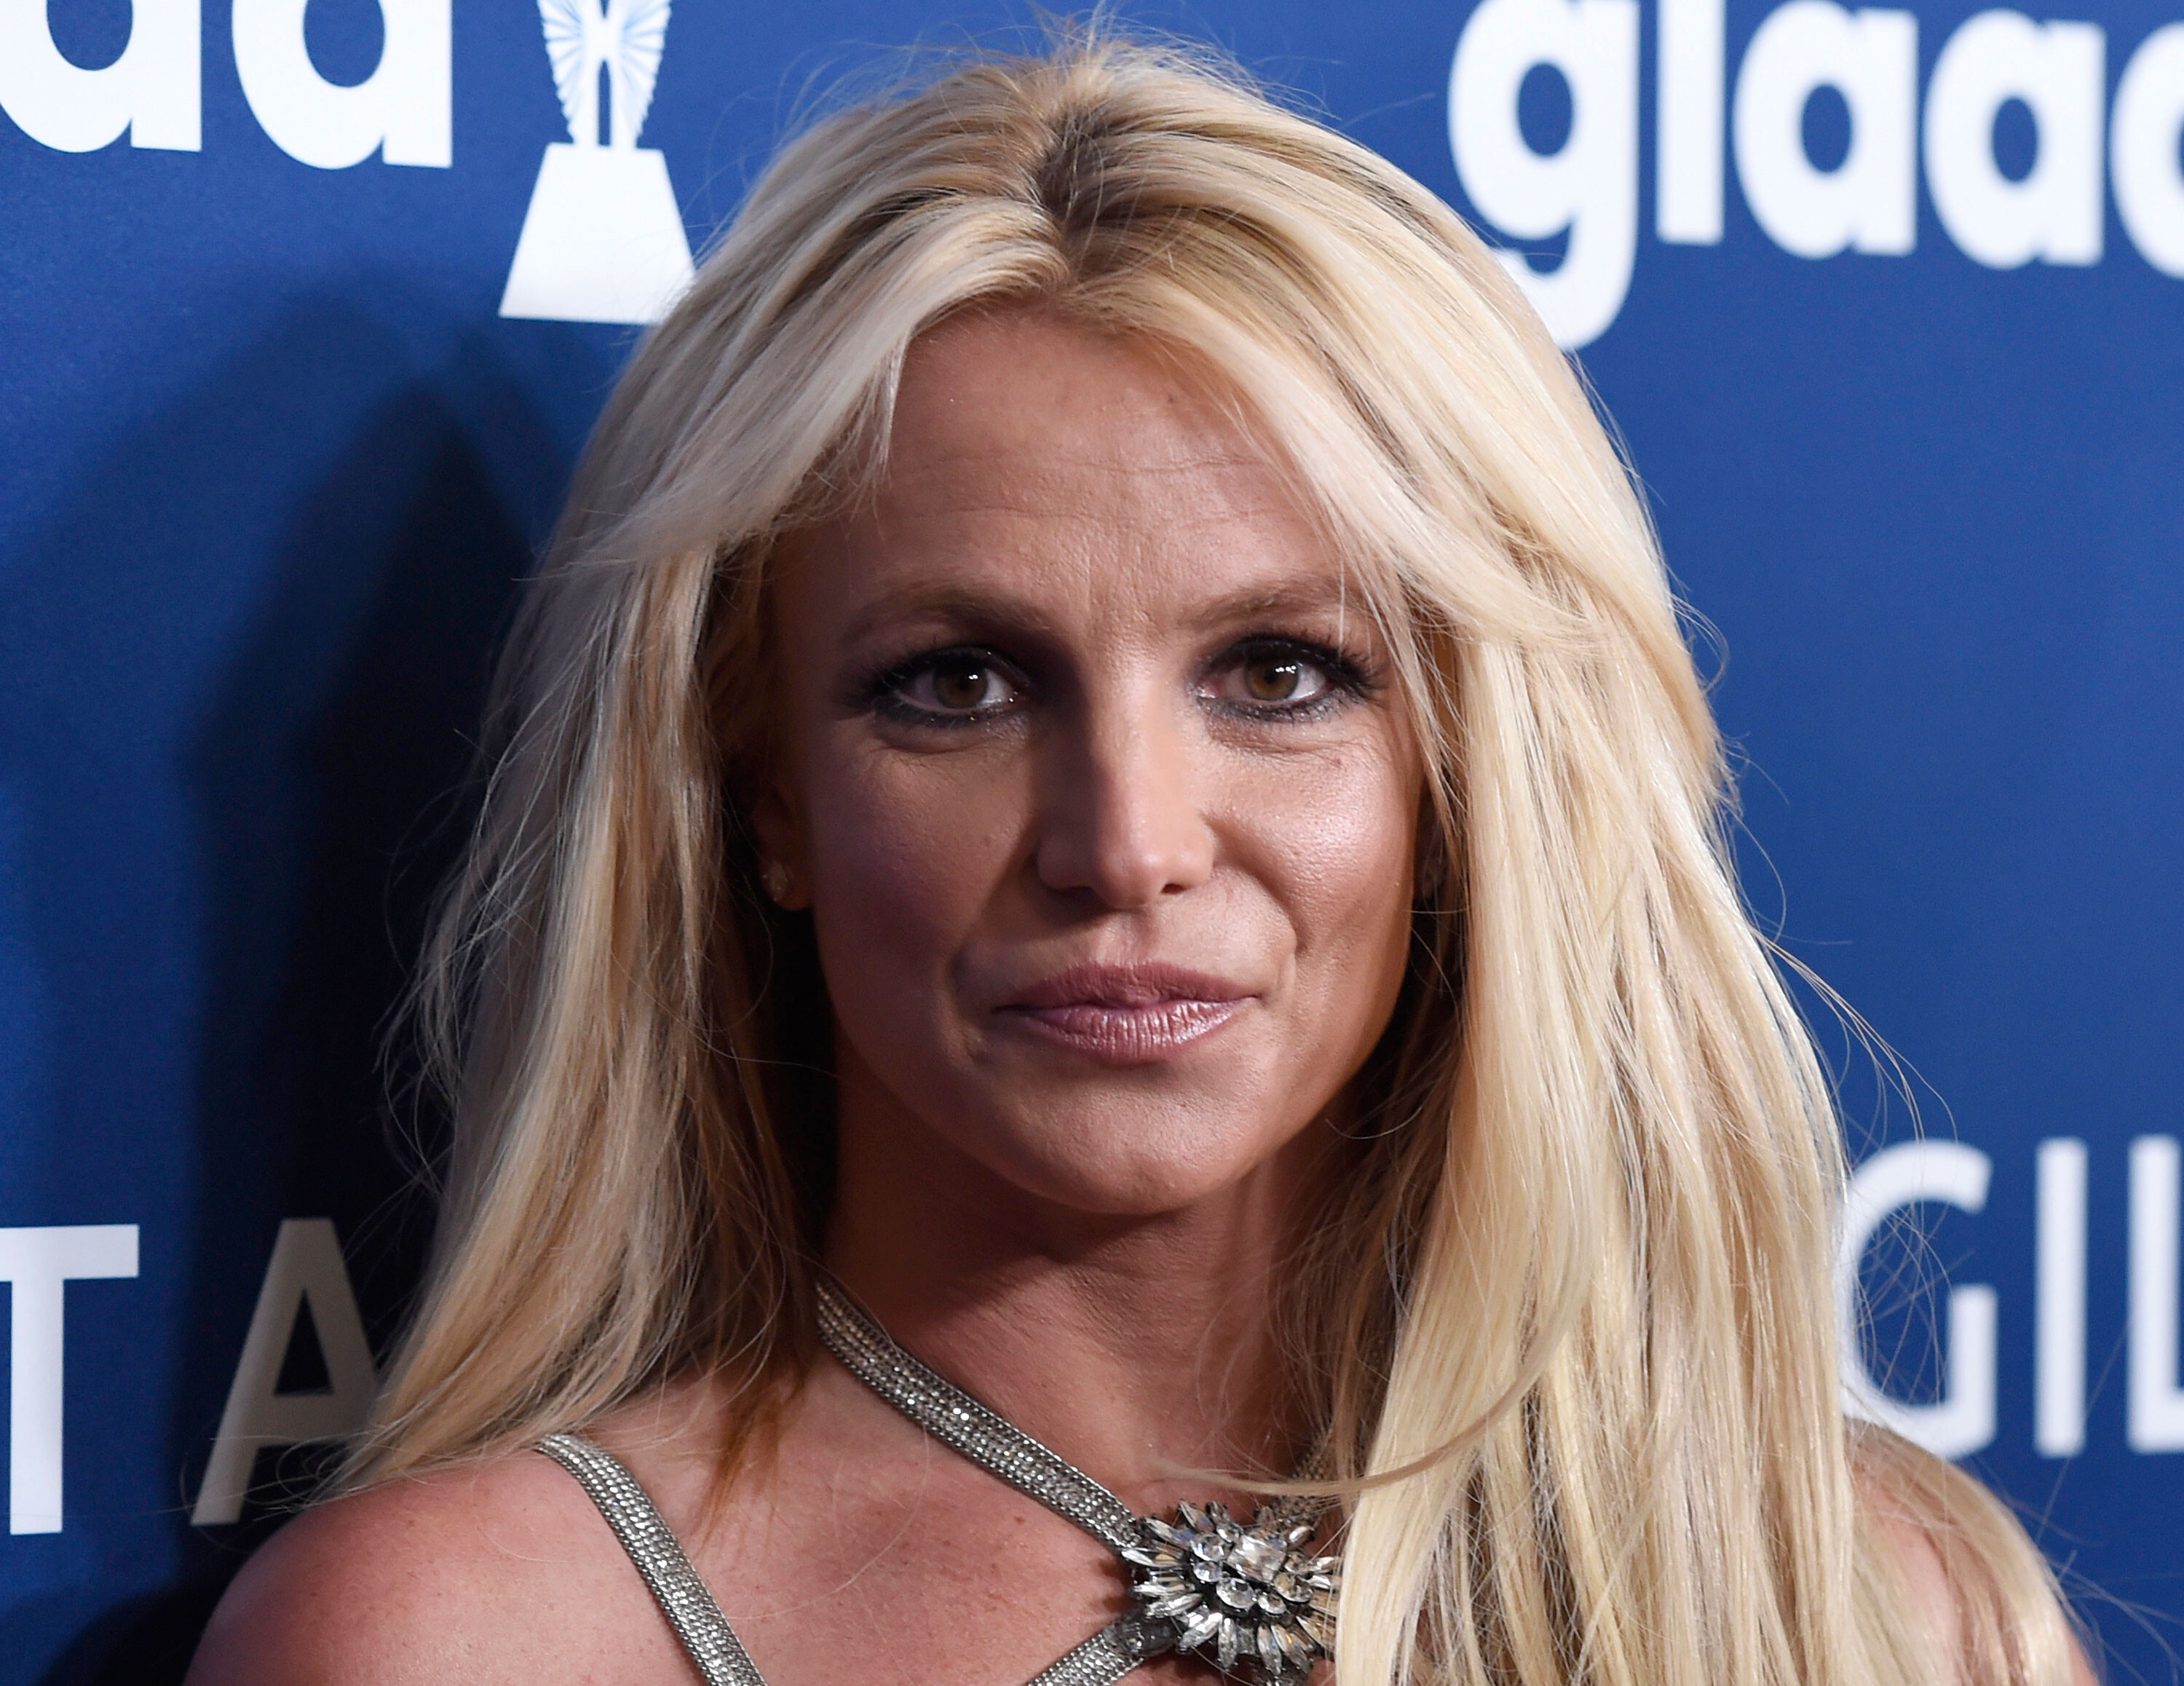 Britney Spears' Project Rose has supporters trying to decipher her clues